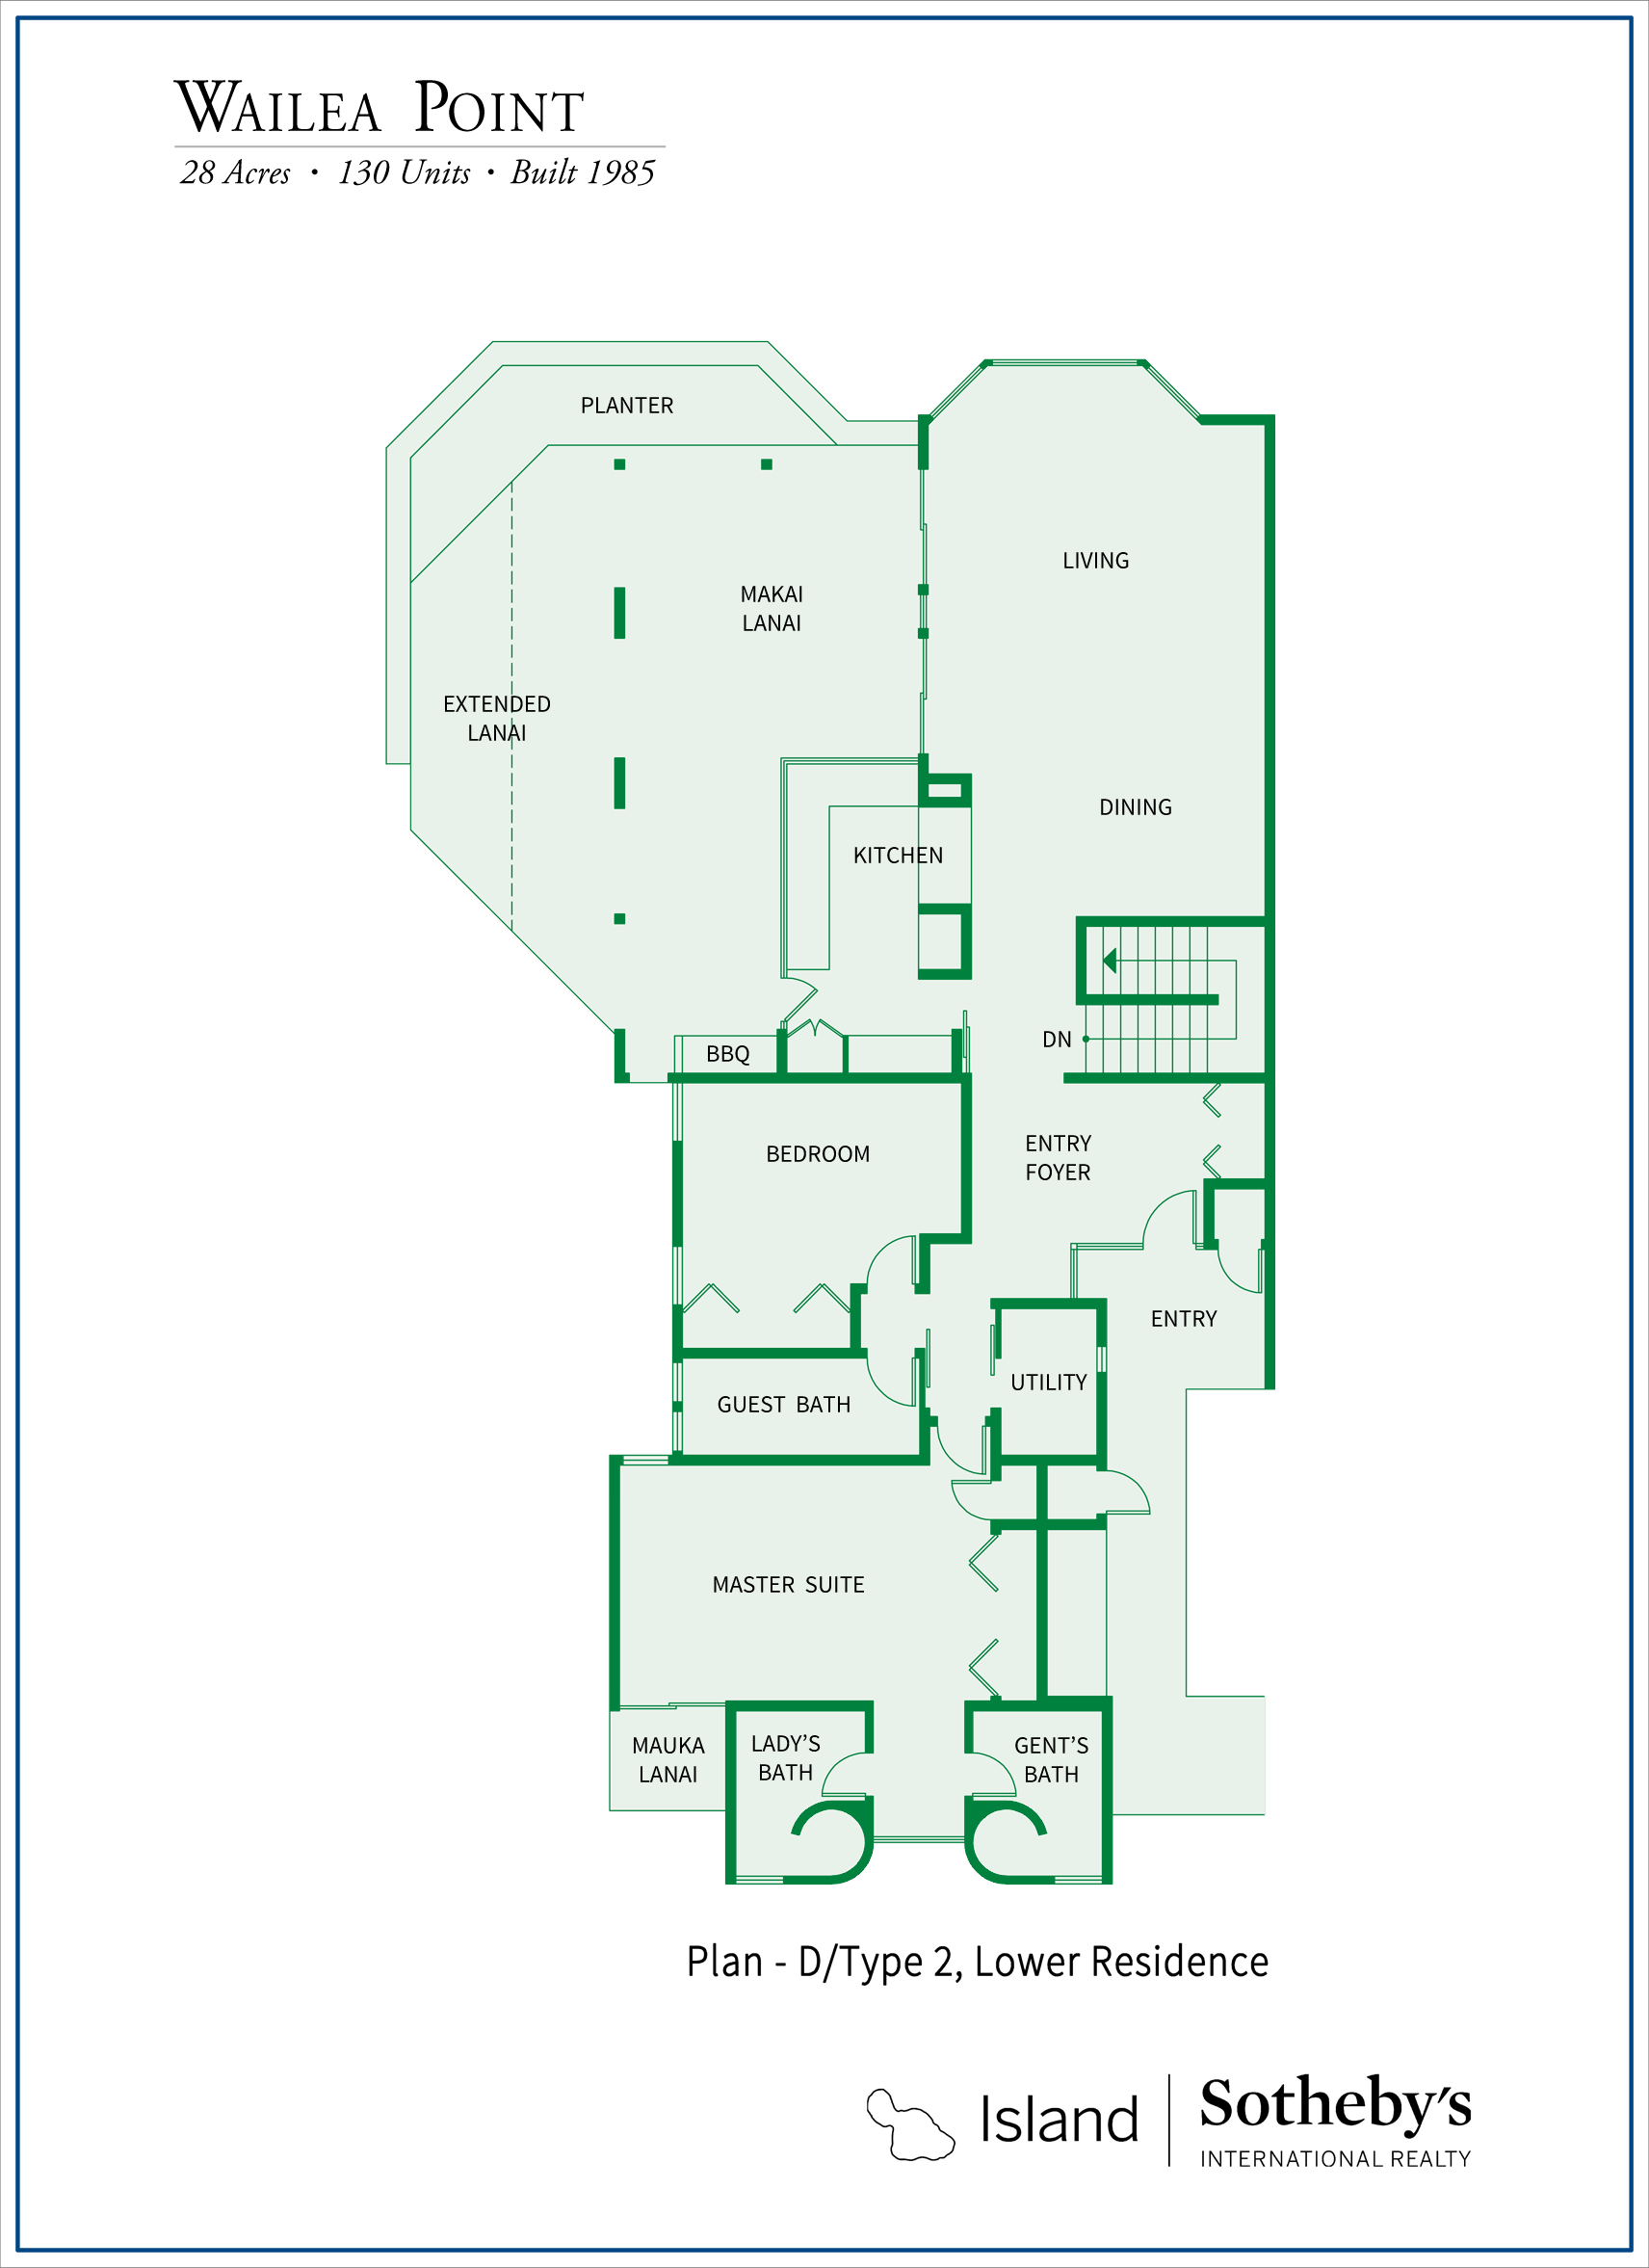 maui wailea point floor plan condo